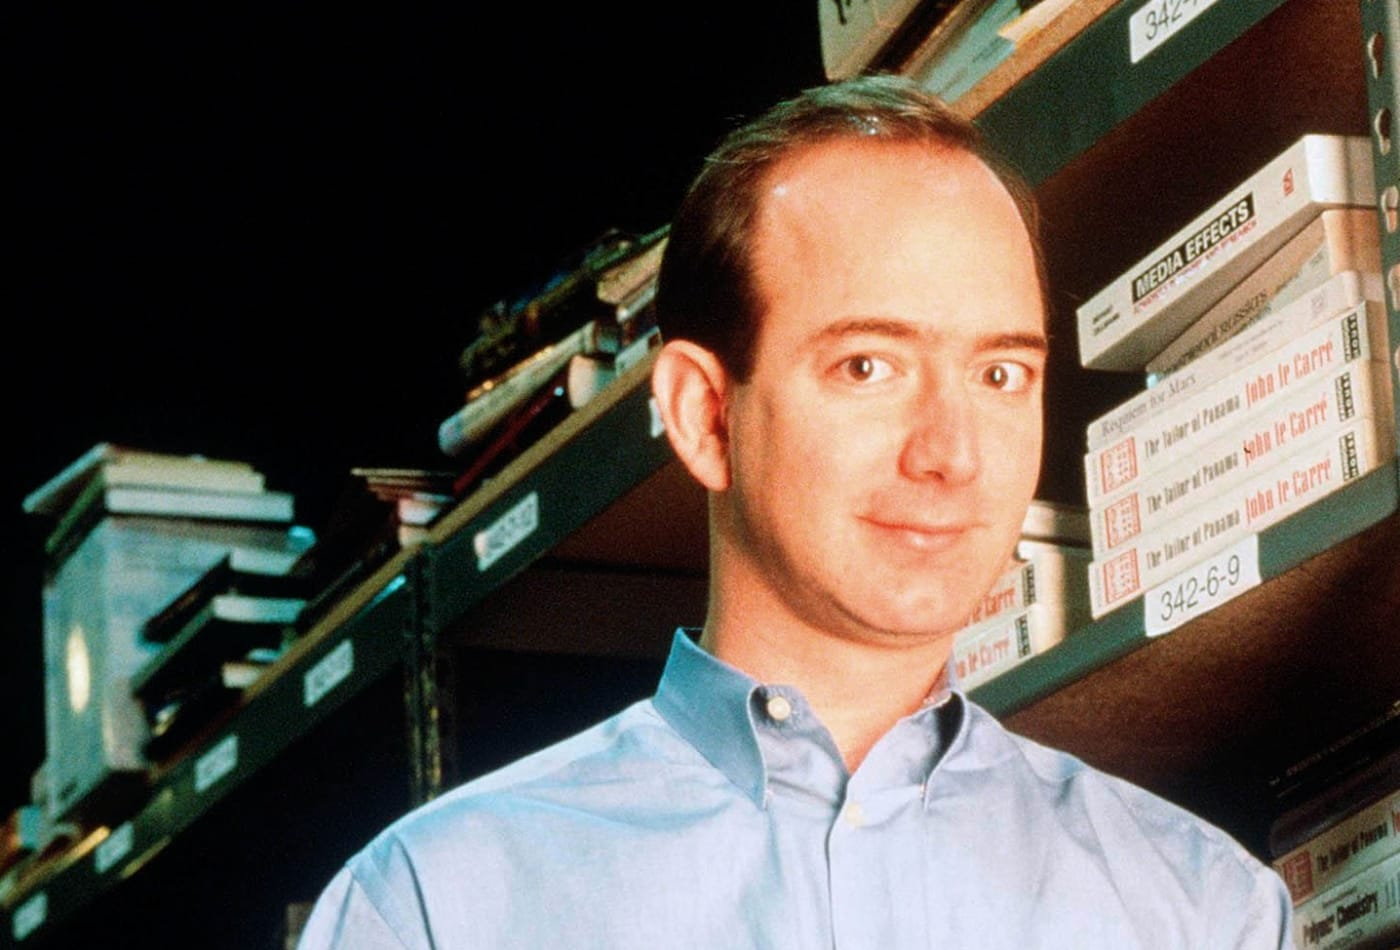 Amazon was first founded in 1994 by its founder Jeff Bezos